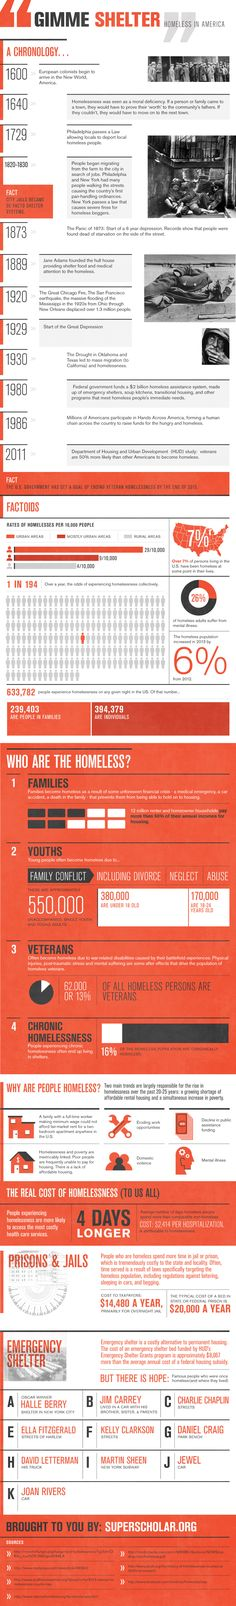 Infographic on the history of homelessness